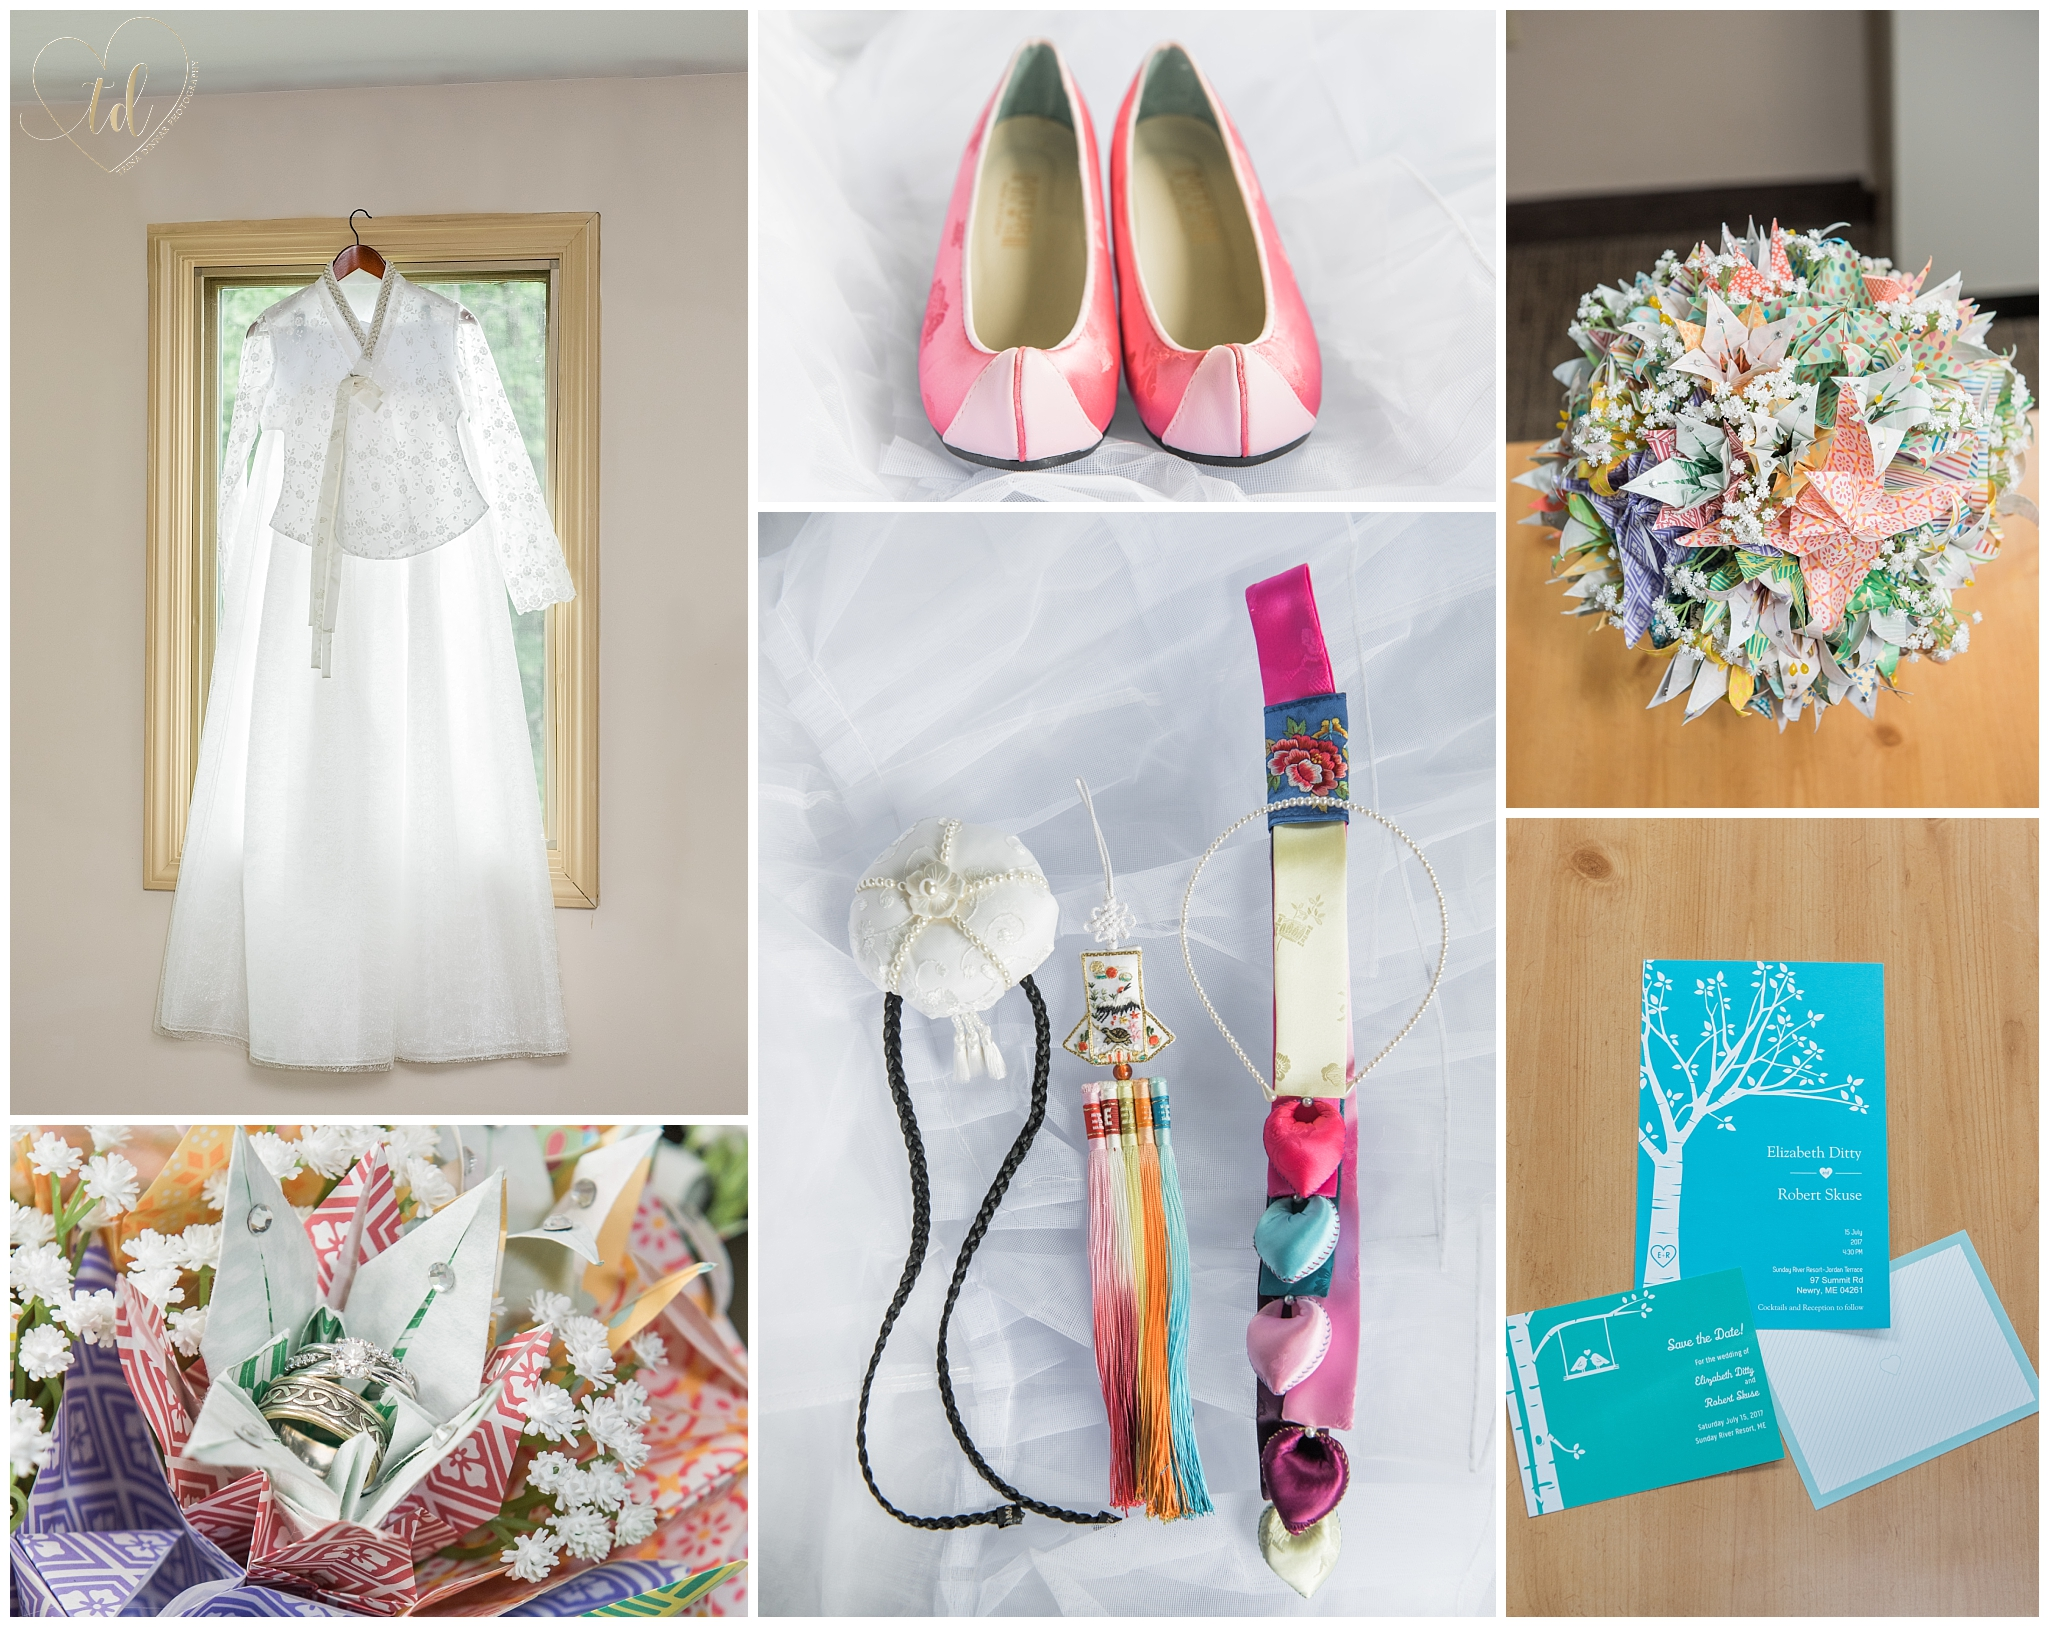 A Maine bride's Korean inspired wedding details including bridal gown, shoes and bouquet.